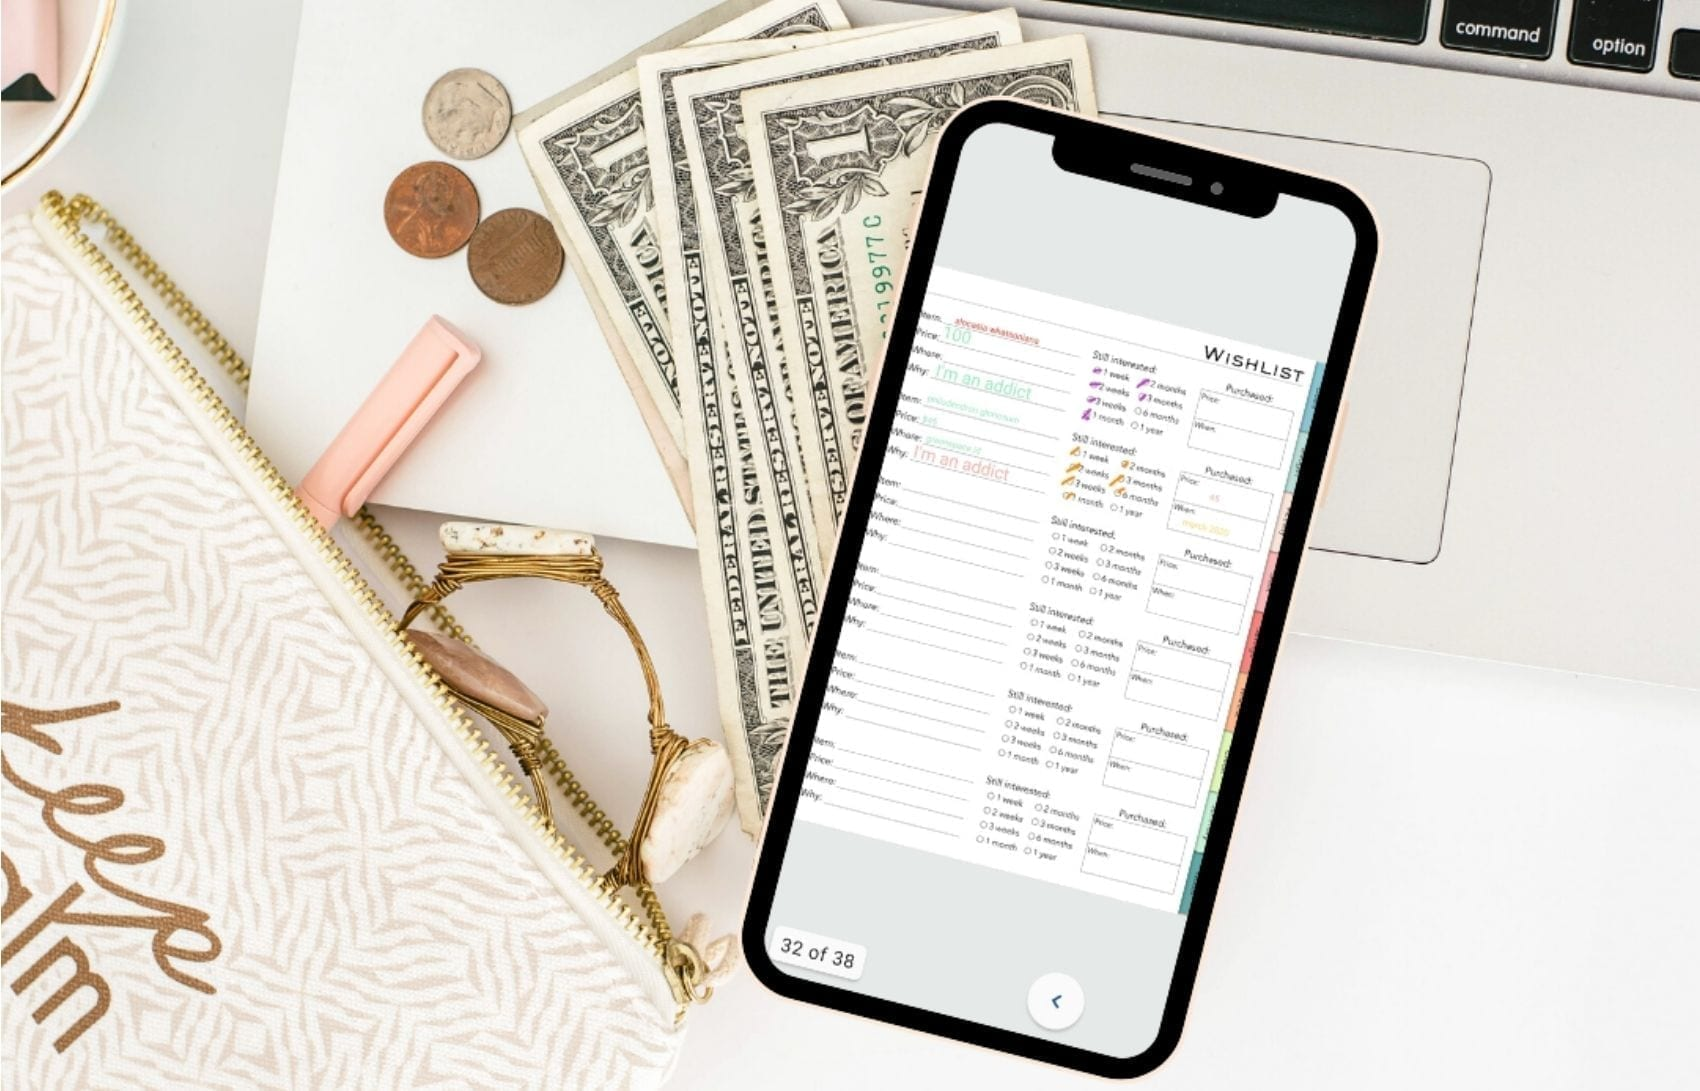 Have you ever used a digital planner? I tried out digital planning with BOSS Personal Planner's budget planner. Check out my review!